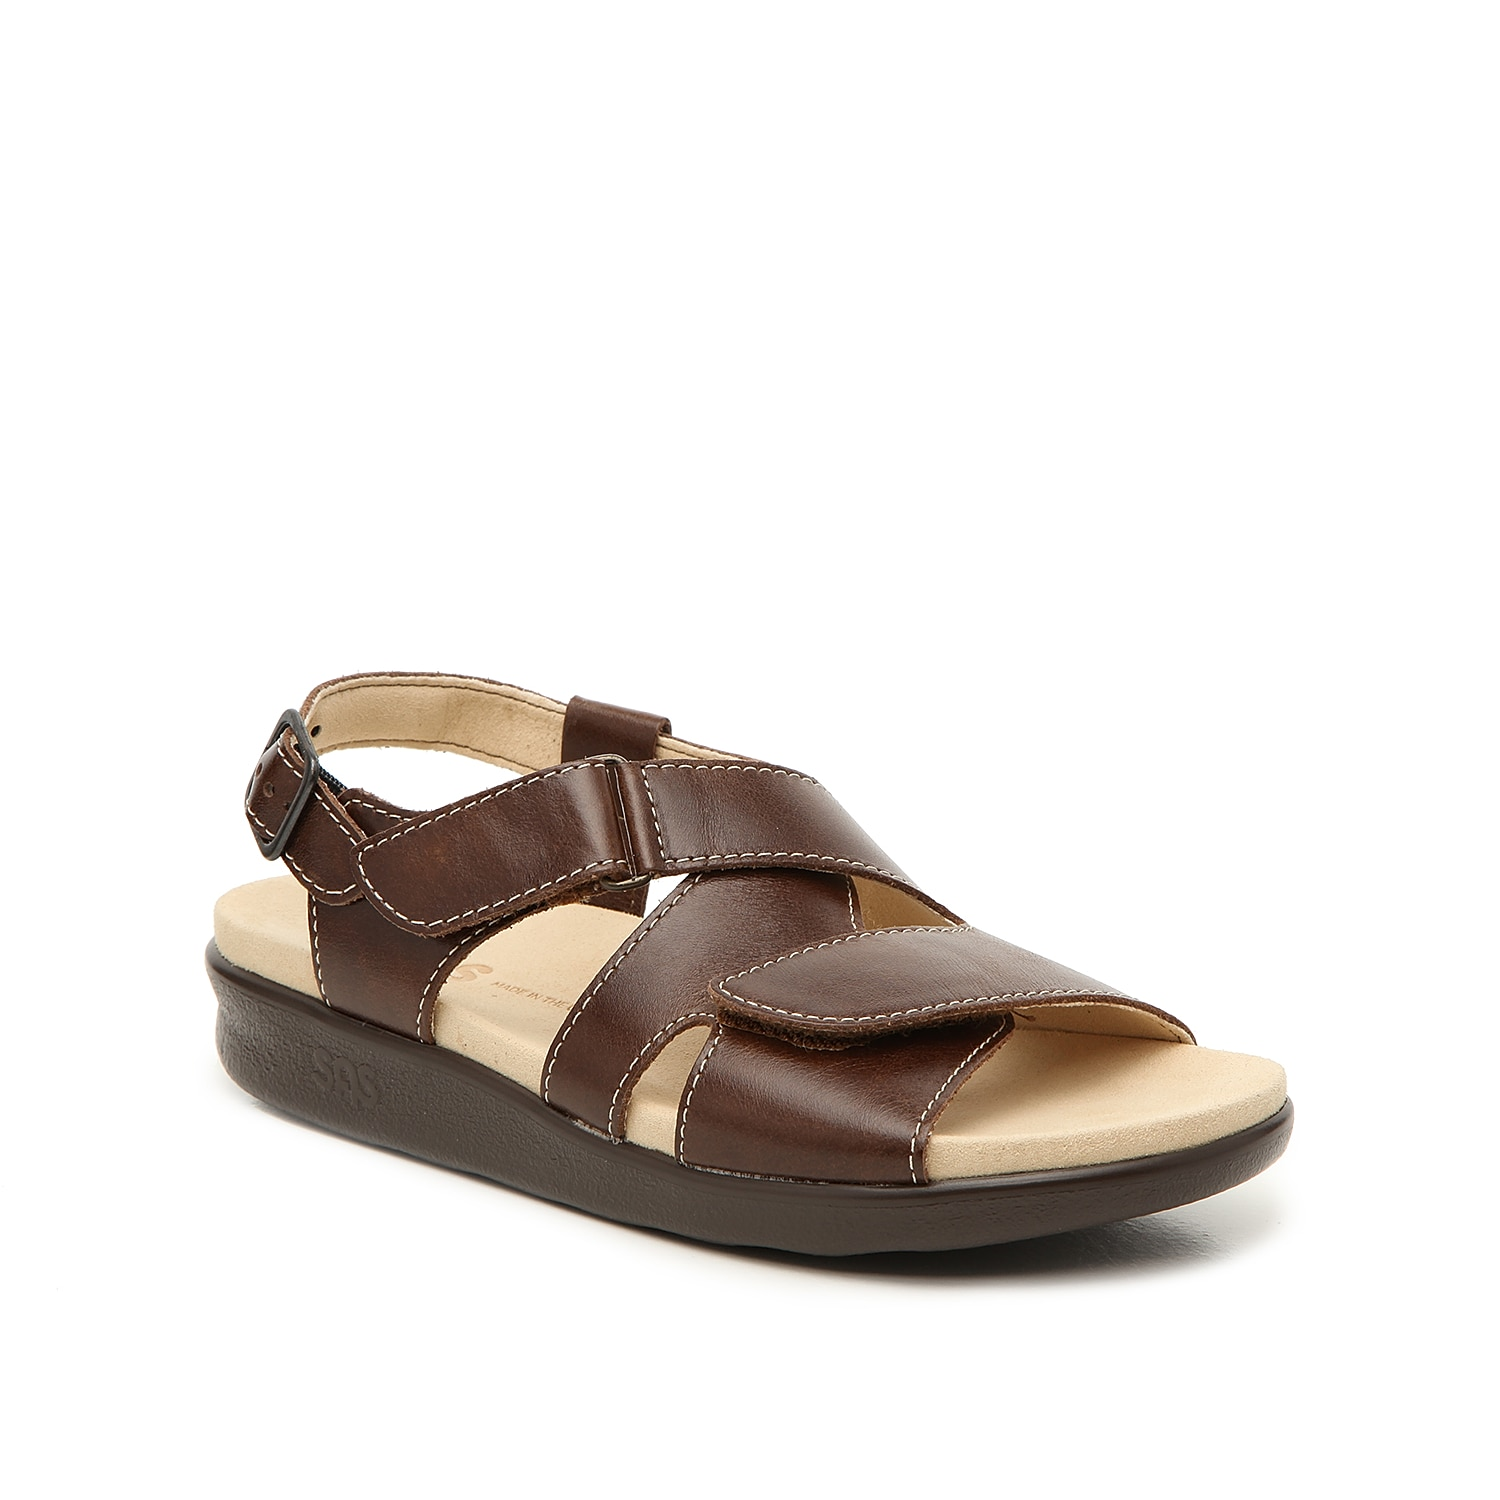 Your feet will fall in love with the Huggy wedge sandal from Sas. A contoured footbed and molded midsole offer support while the hook and loop straps provide a custom fit!